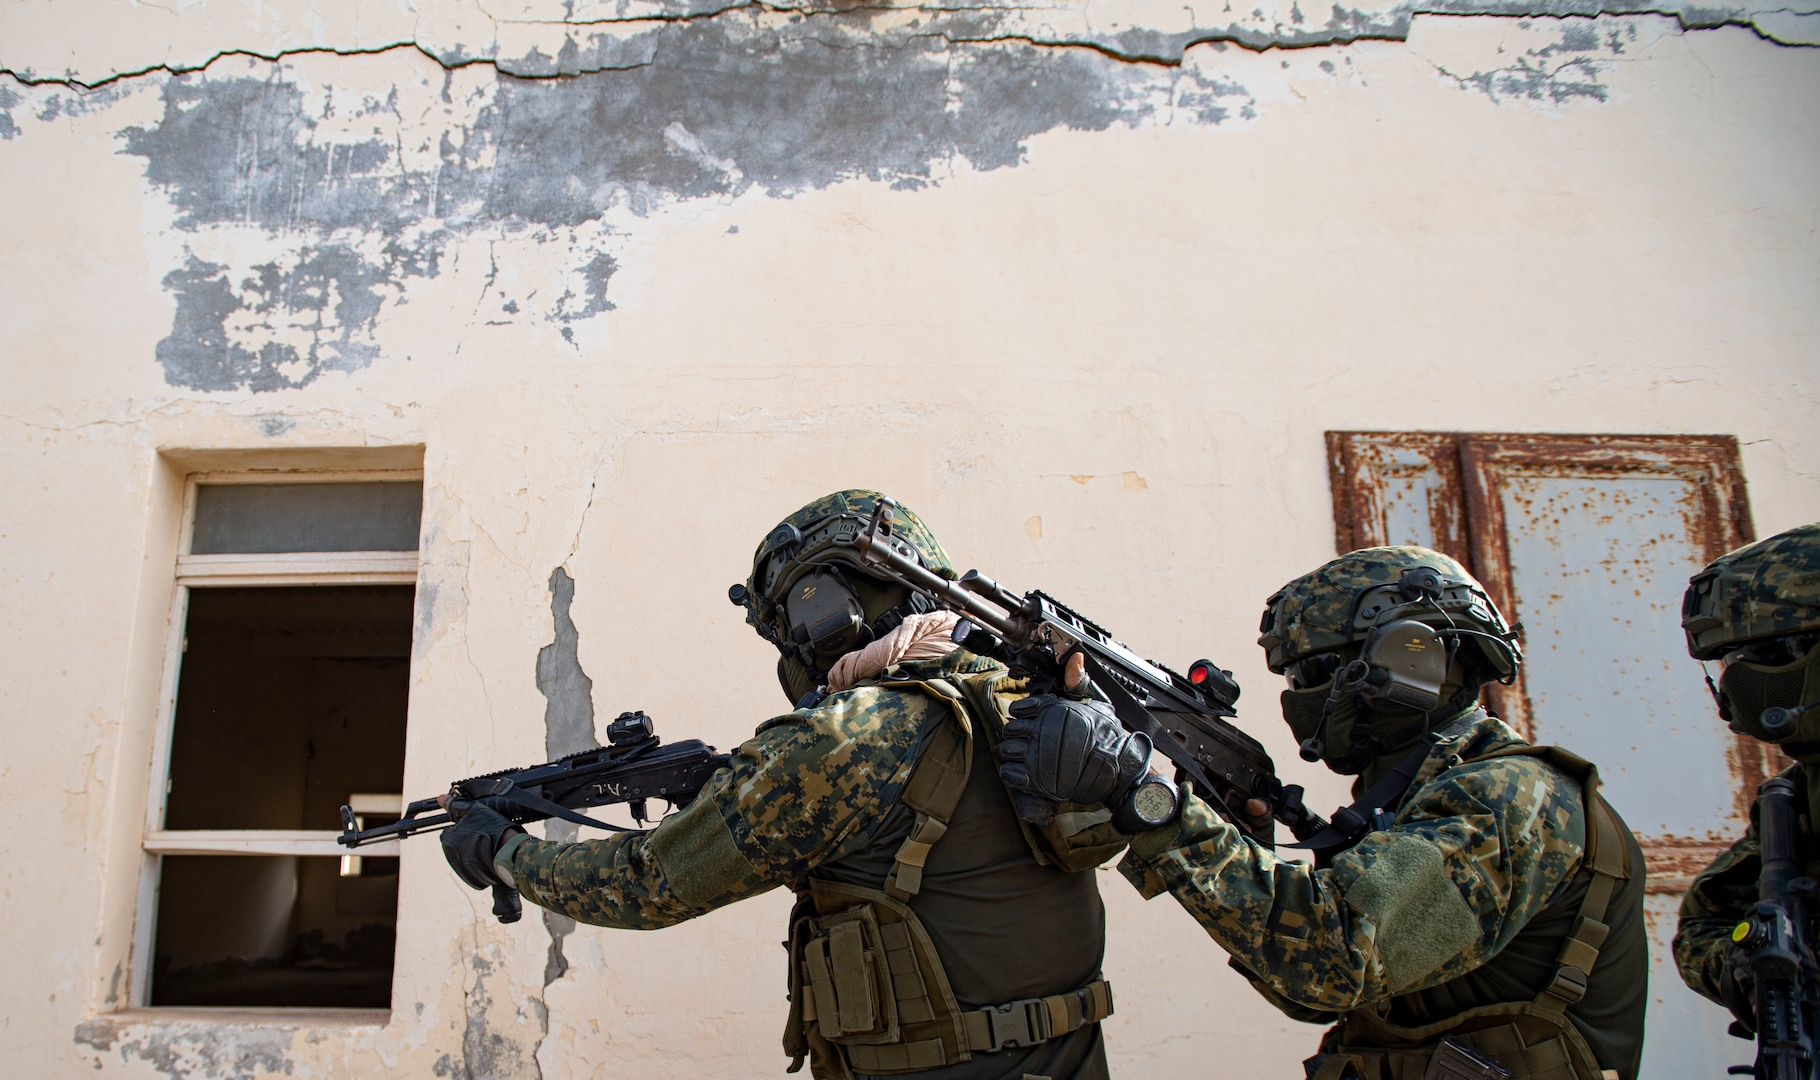 Guinean special forces soldiers conduct close quarters battle training in abandoned hotel